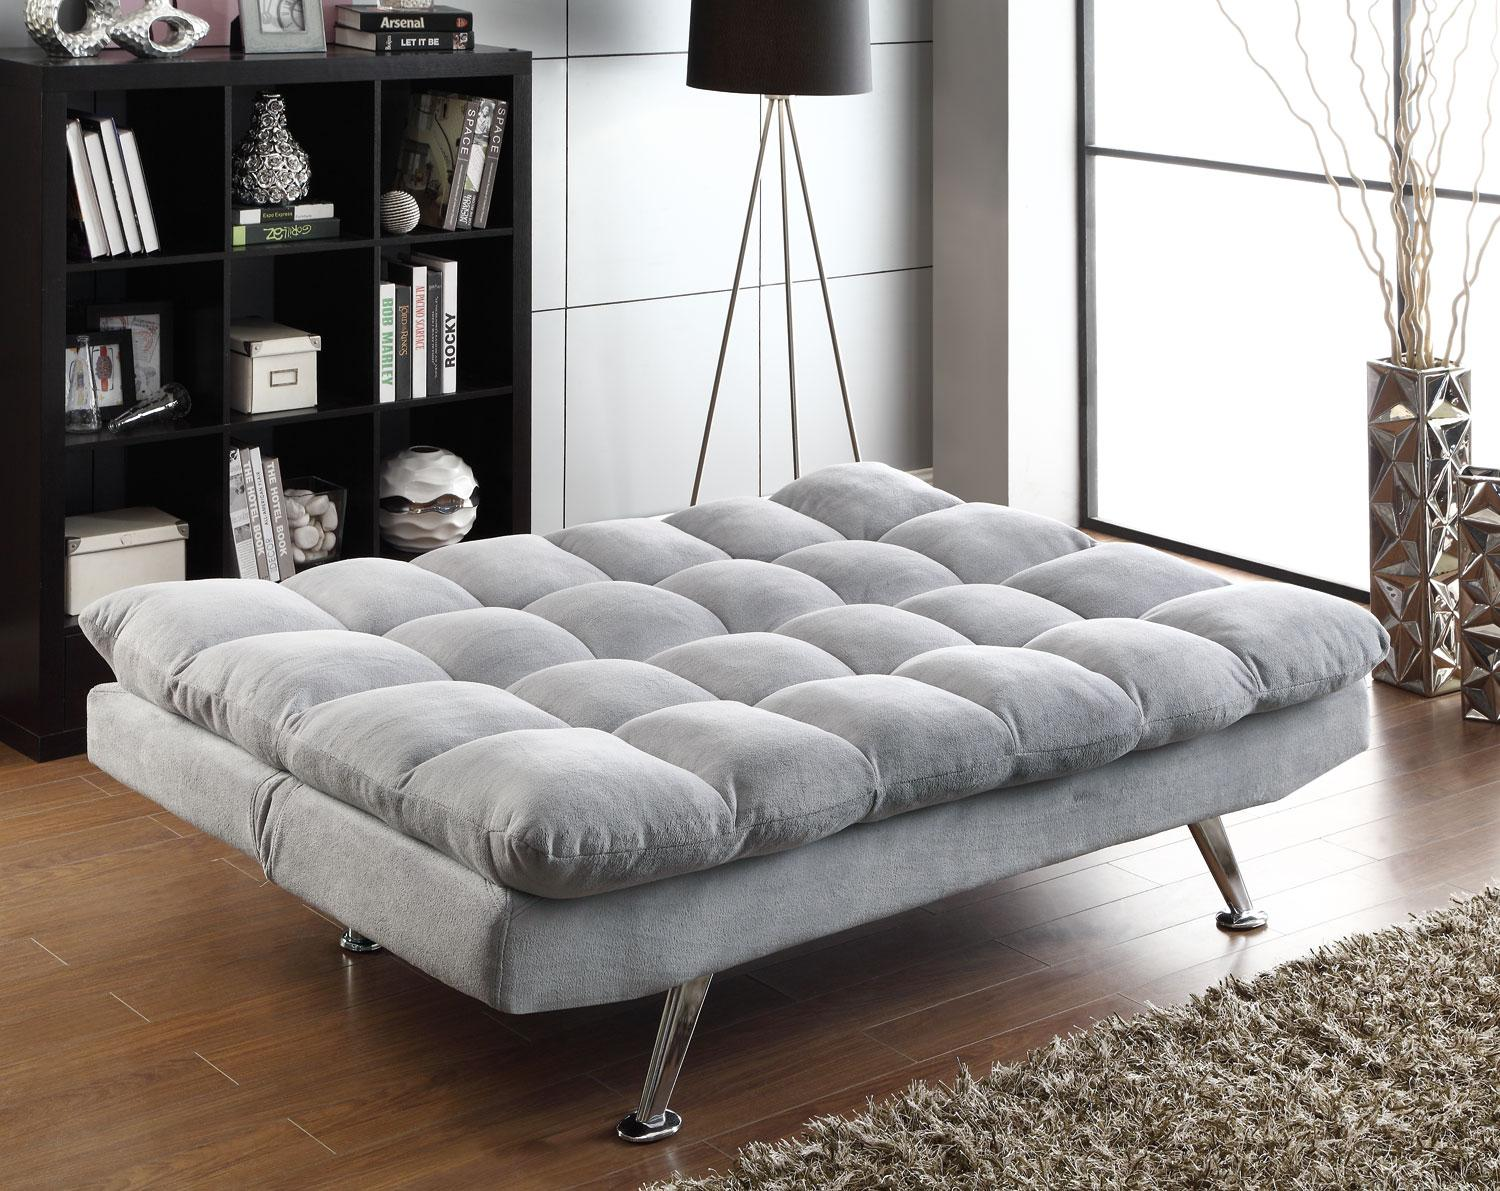 Futon Sofas For Sale - Home Interior Designer Today •